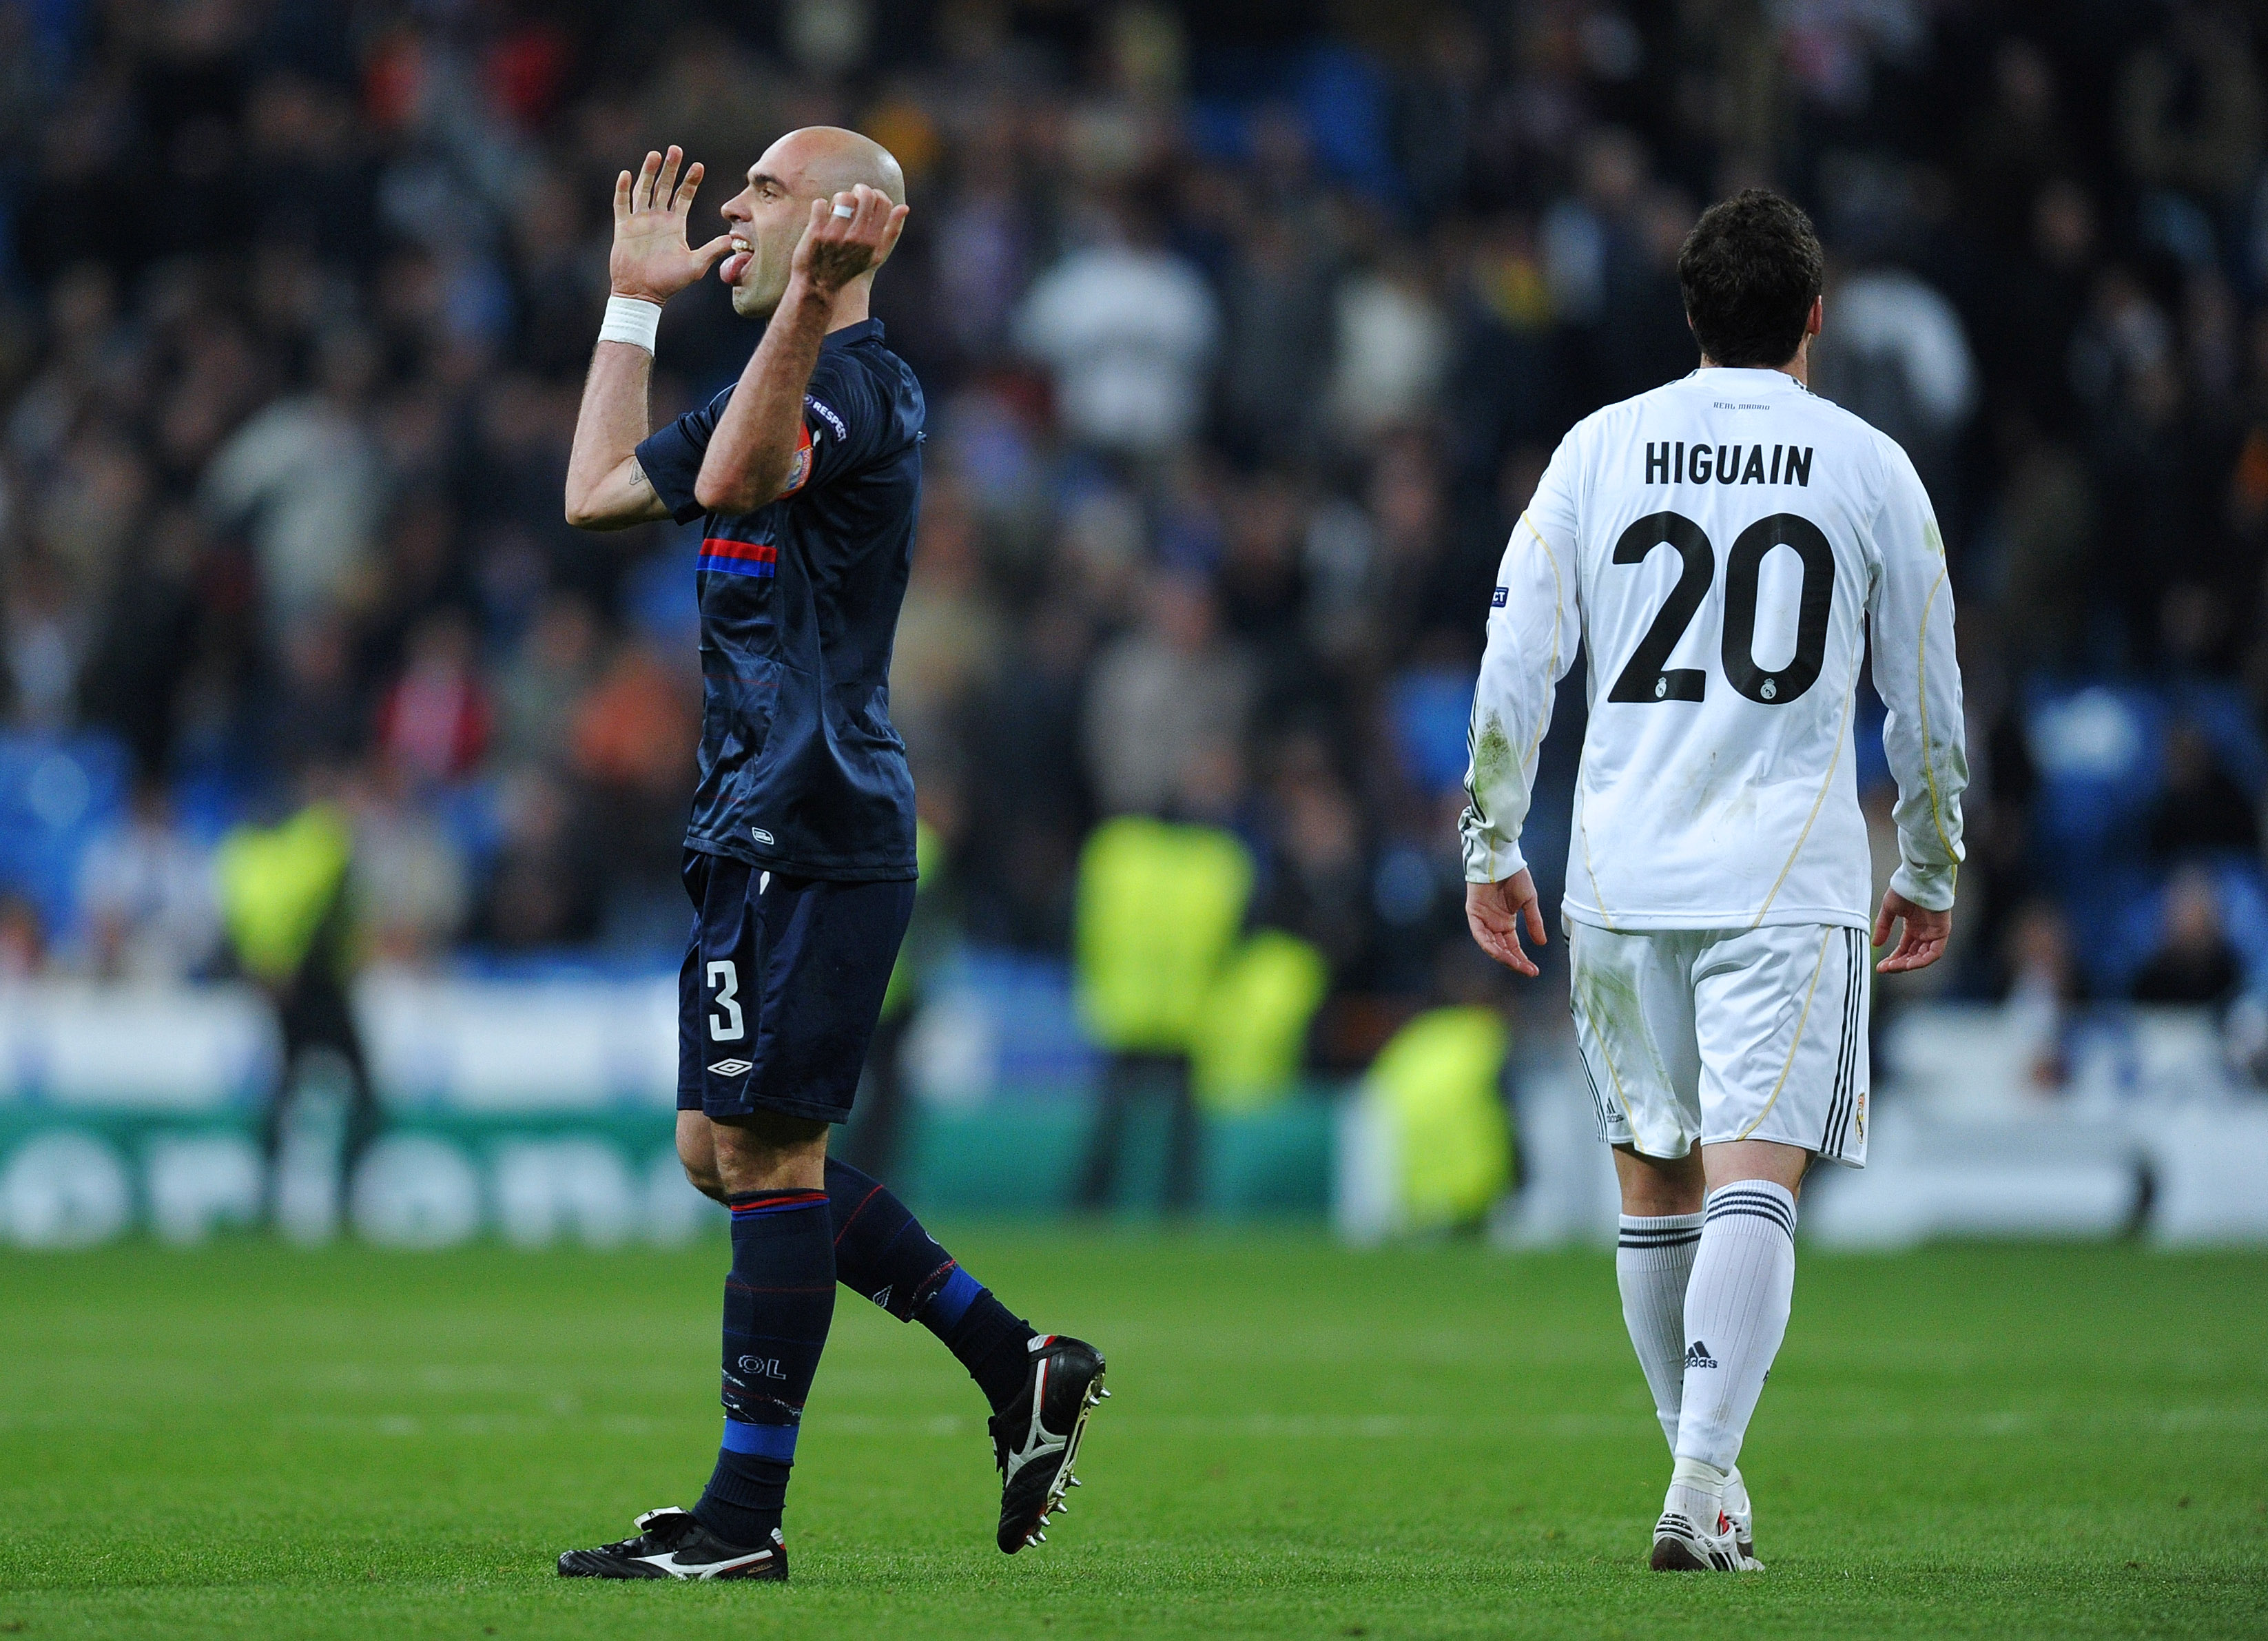 MADRID, SPAIN - MARCH 10:  Cris (L) captain of Lyon celebrates as Gonzalo Higuain of Real Madrid trudges off the pitch during the UEFA Champions League round of 16 second leg match between Real Madrid and Lyon at the Estadio Santiago Bernabeu on March 10,